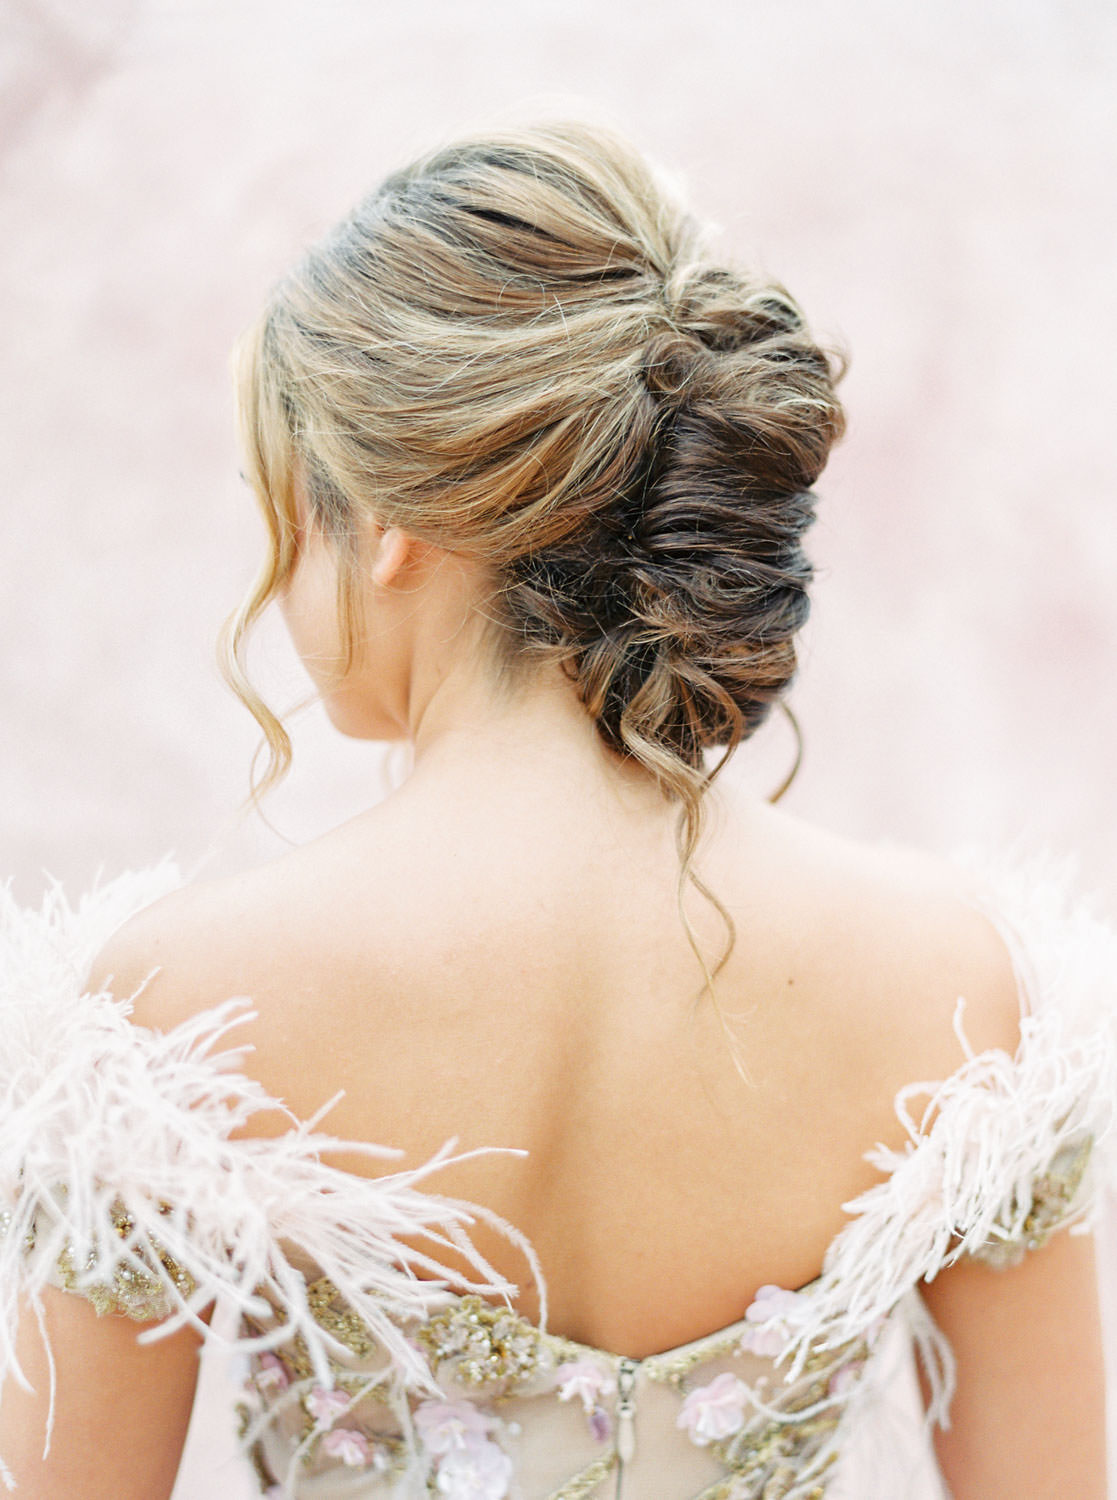 Bridal updo long twist wearing a Marchesa couture gown with blush feathers, gold lines, and floral embellishments. Honey and Beekeeper Inspired Wedding on sunrise terrace patio at Rancho Valencia on film by Cavin Elizabeth Photography